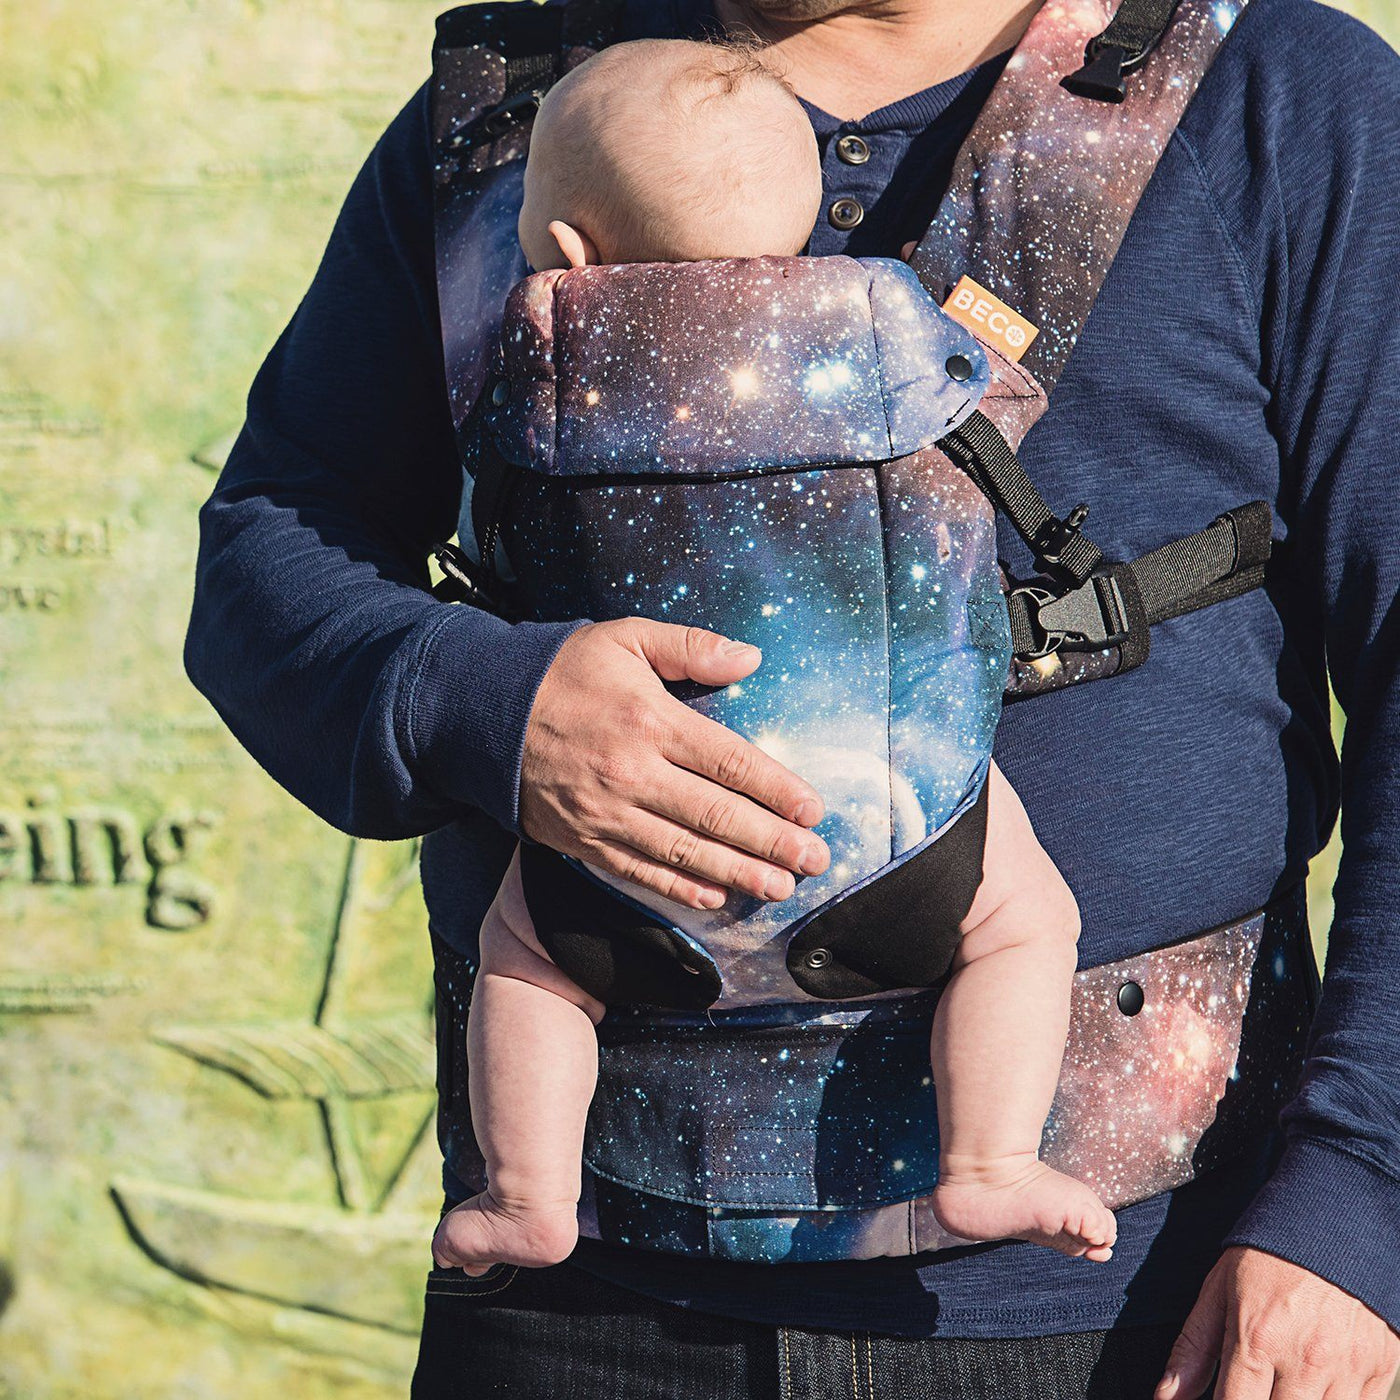 585e2a57786 Beco Gemini Baby Carrier - best baby carrier for dads and petite moms.